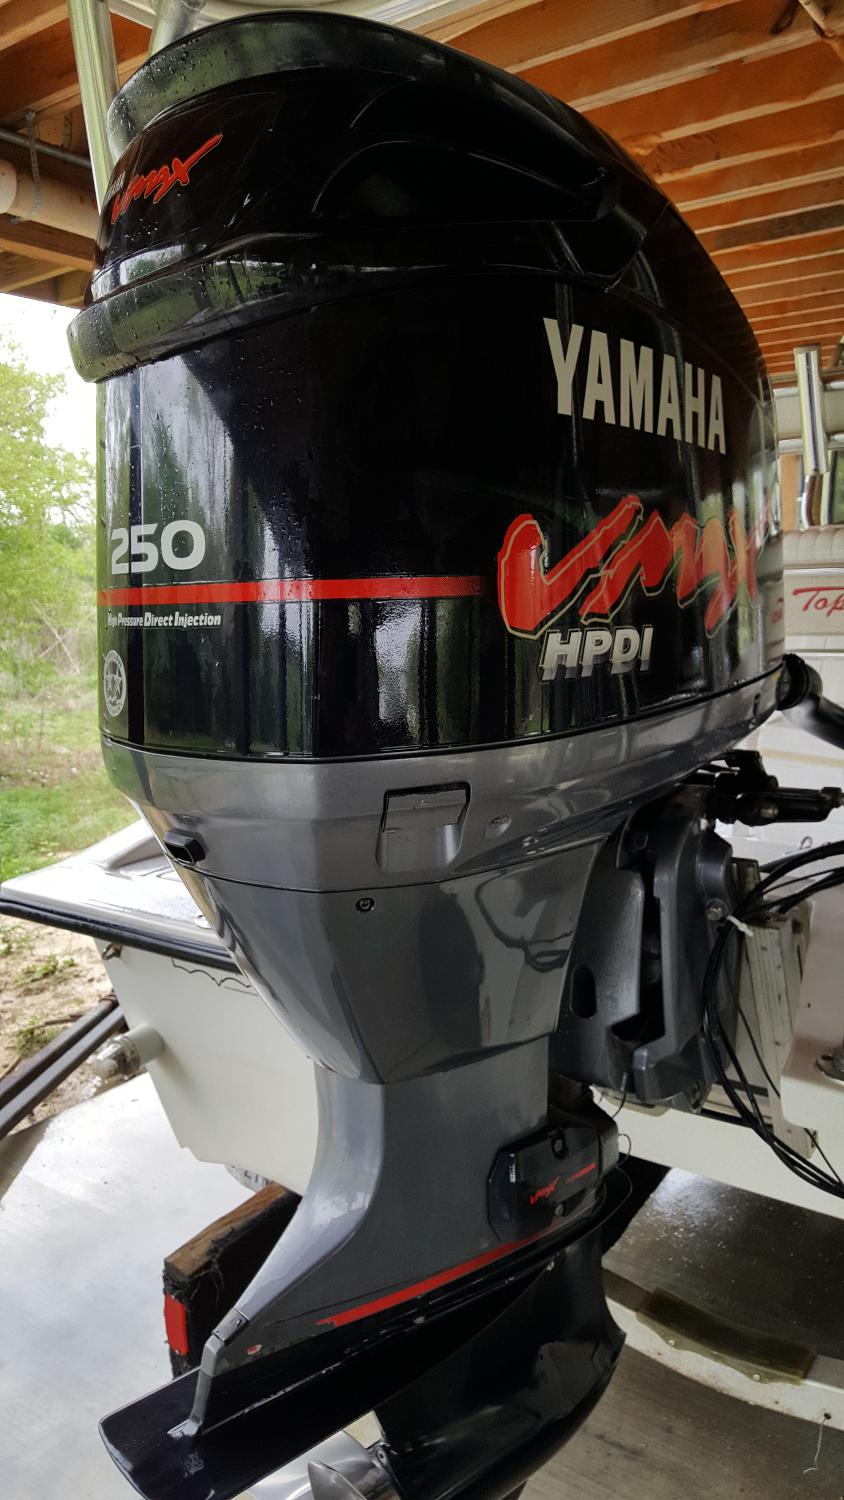 Best 2005 yamaha 250 hpdi to trade or sell for sale in for Yamaha 250 hpdi specs